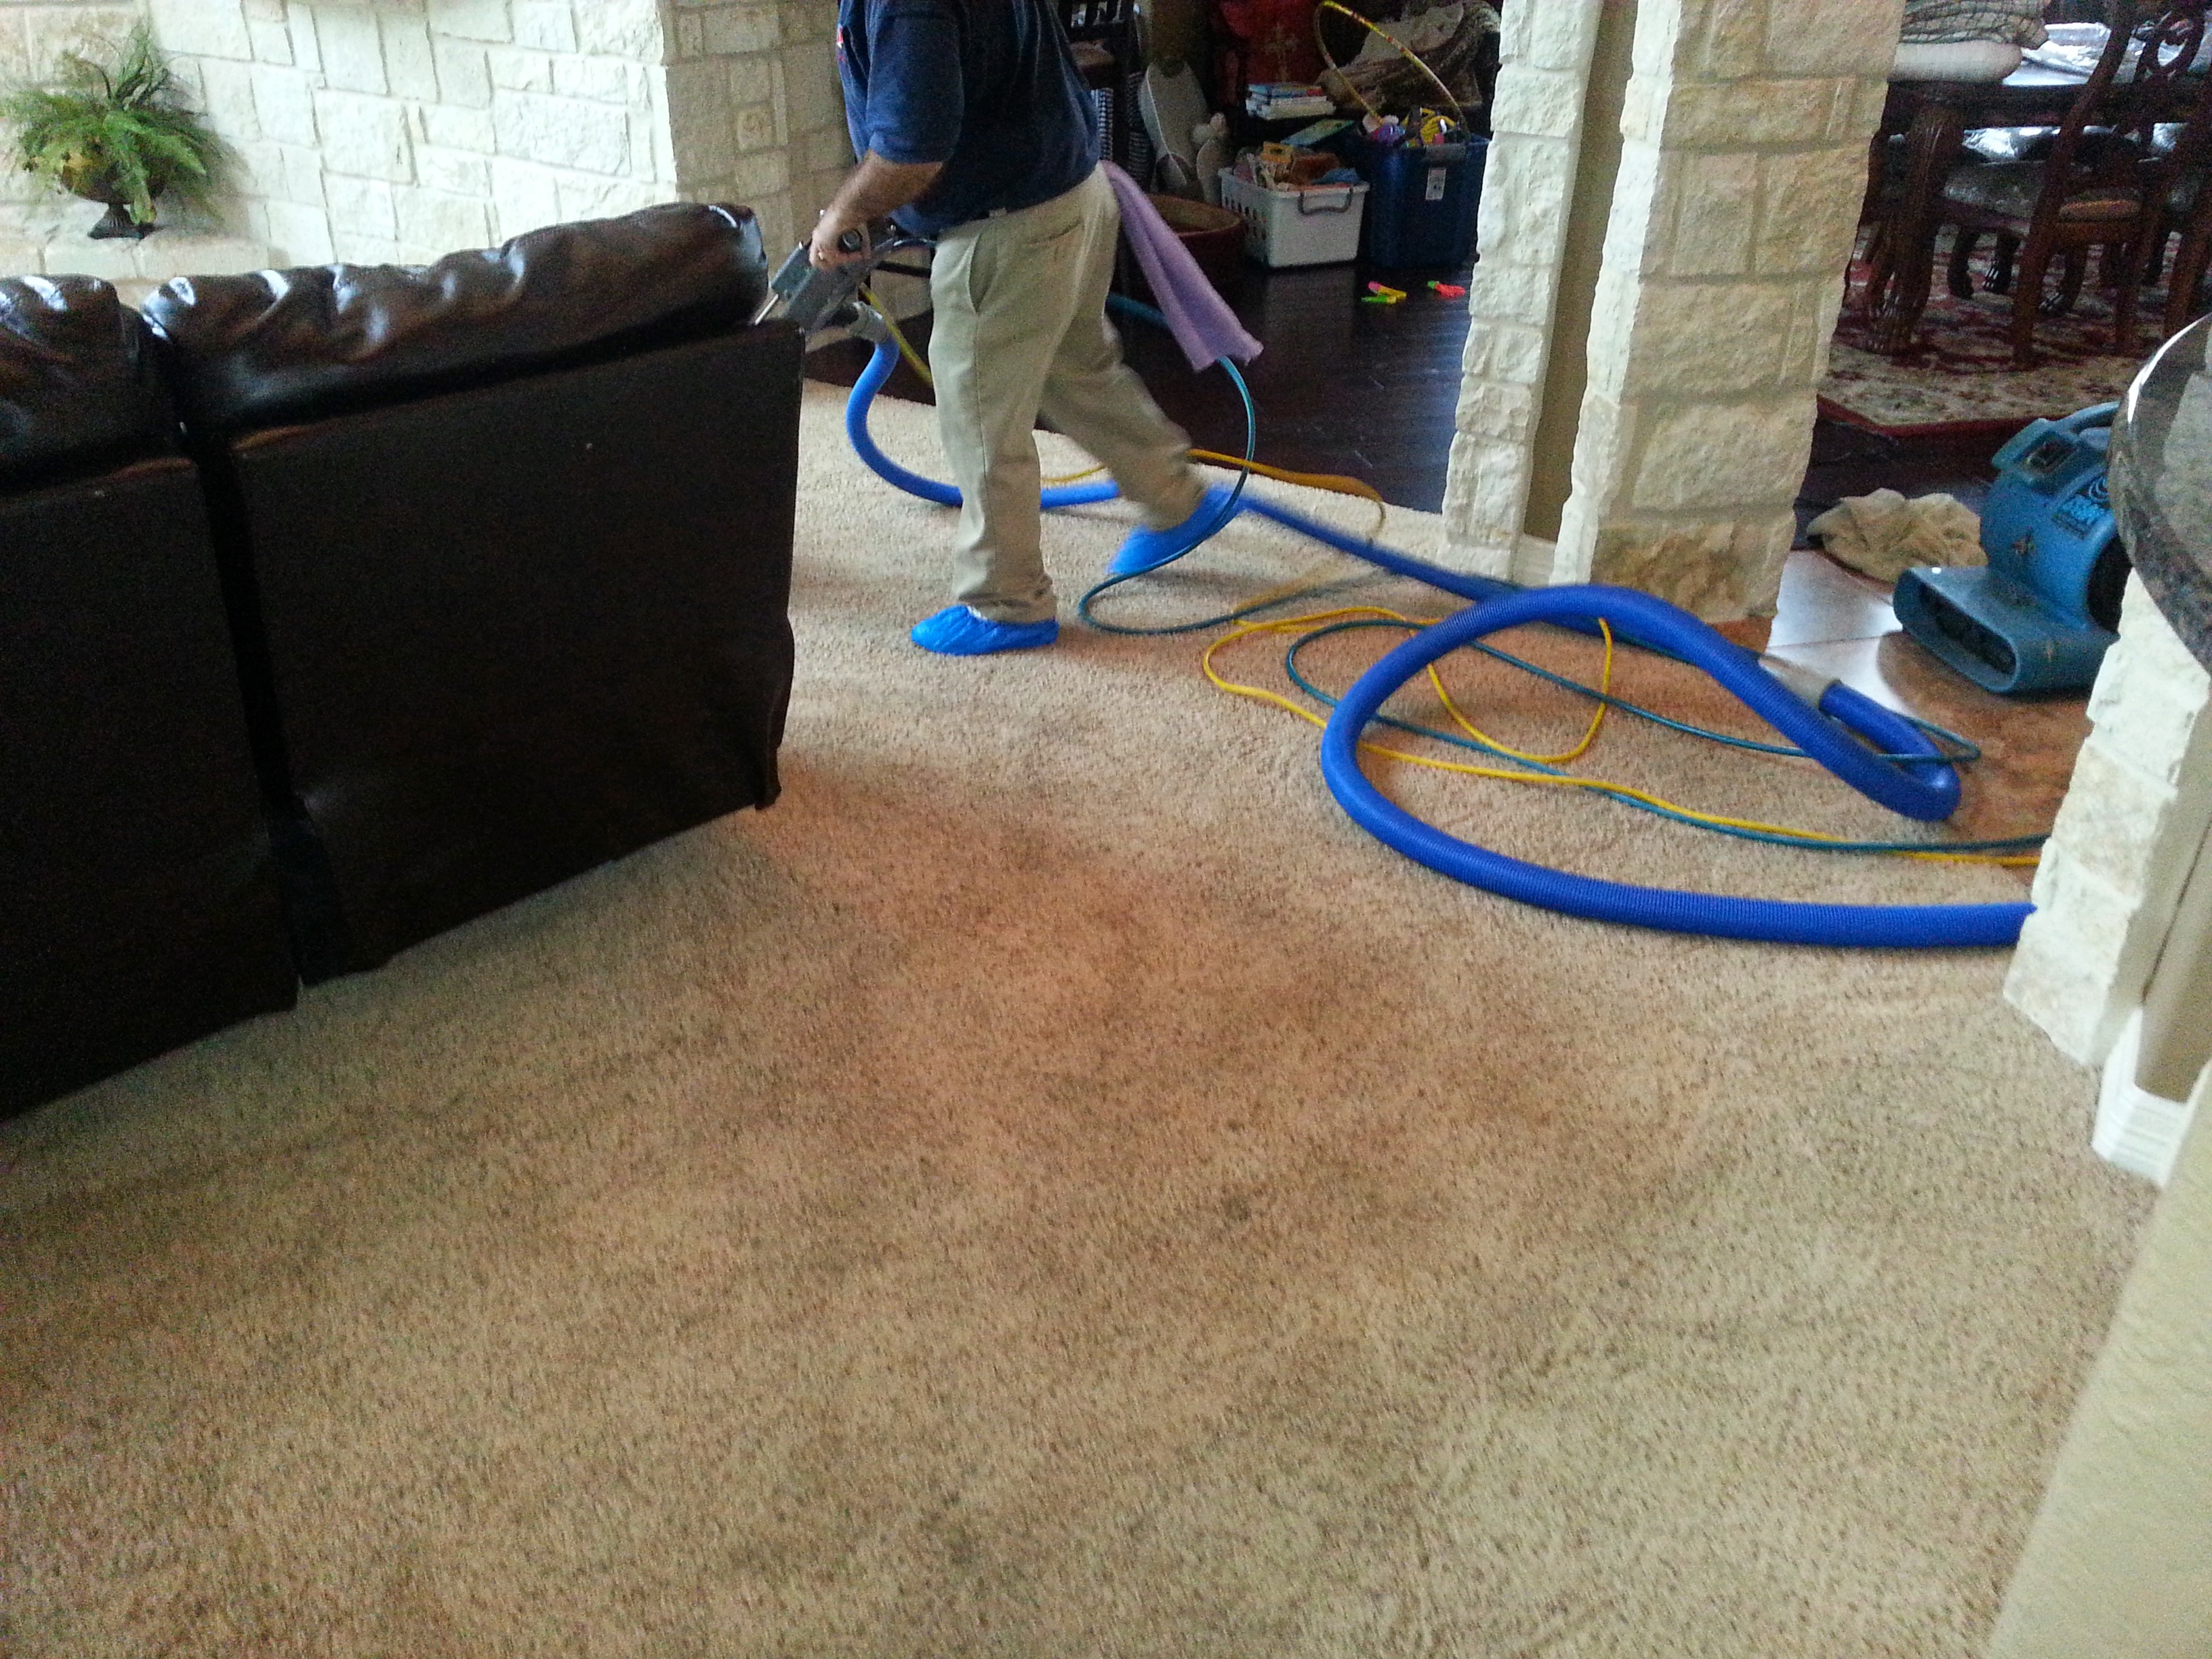 Residue Free Carpet Cleaning  San Antonio, Tx. Best Christmas Beach Vacations For Families. Multiple Sclerosis Diagnosis. Illinois Injury Lawyers Cost Of Hiring Movers. Simple Project Management 0 Introductory Rate